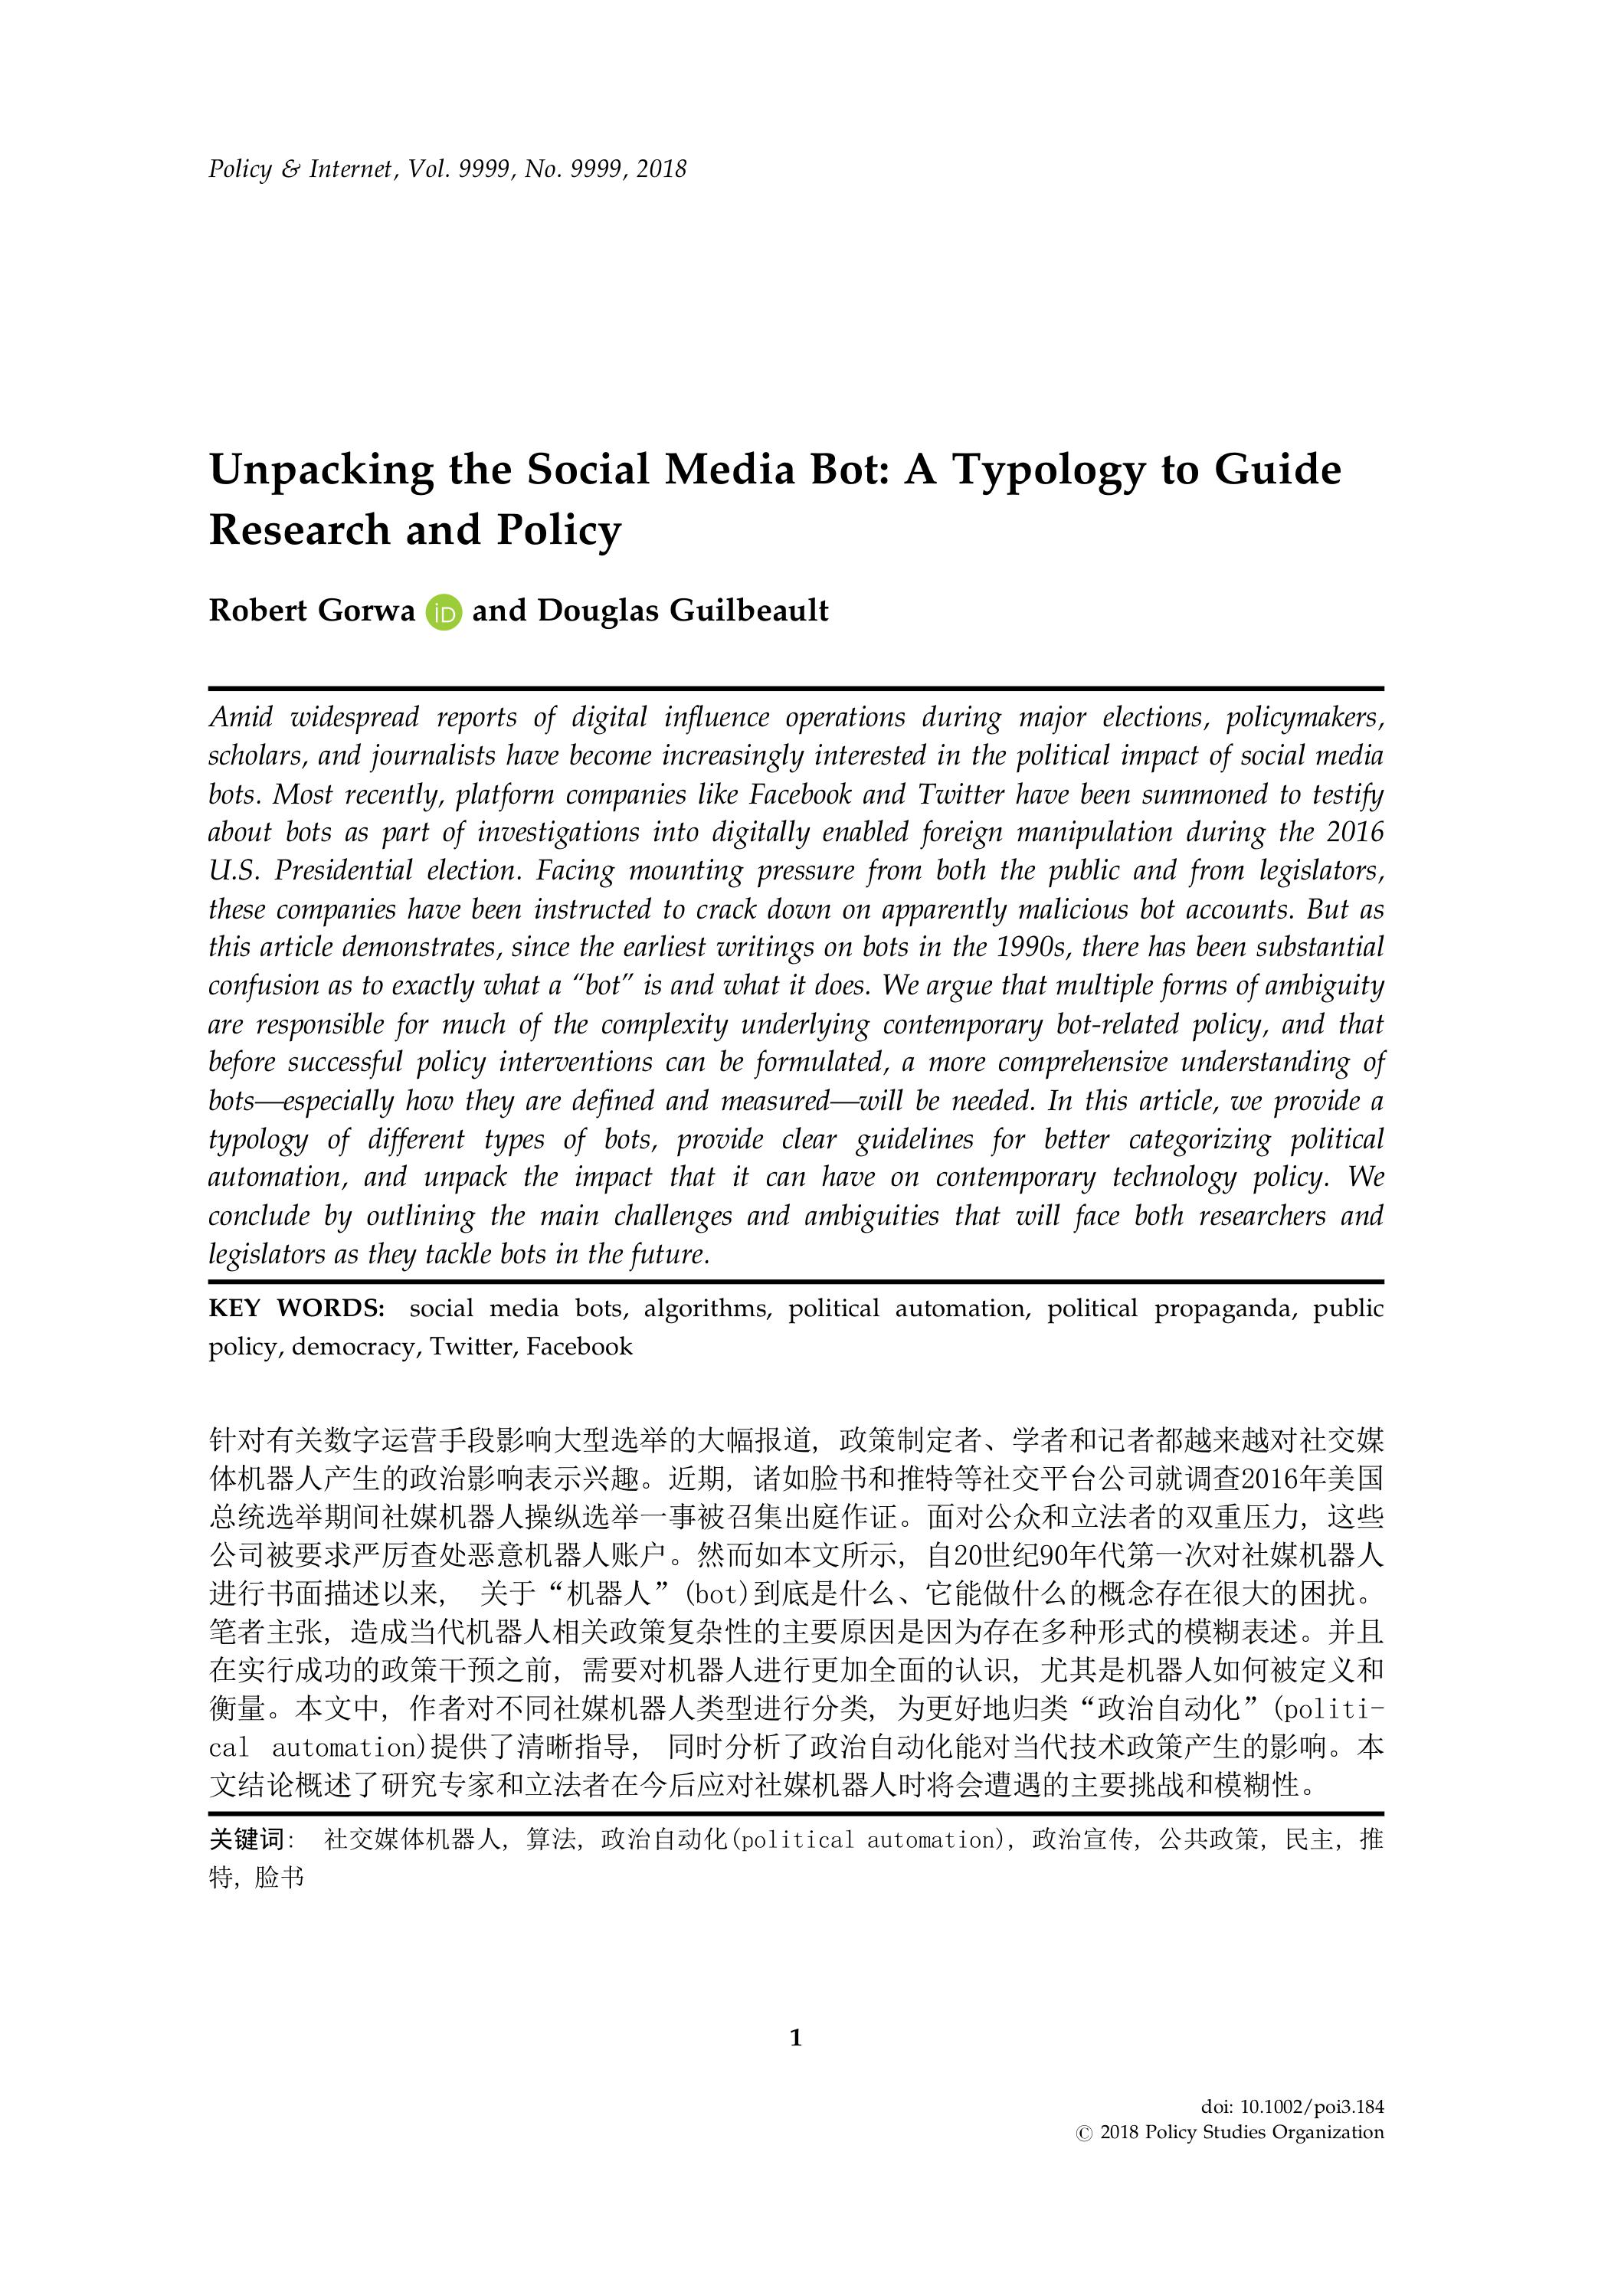 Research essay on media